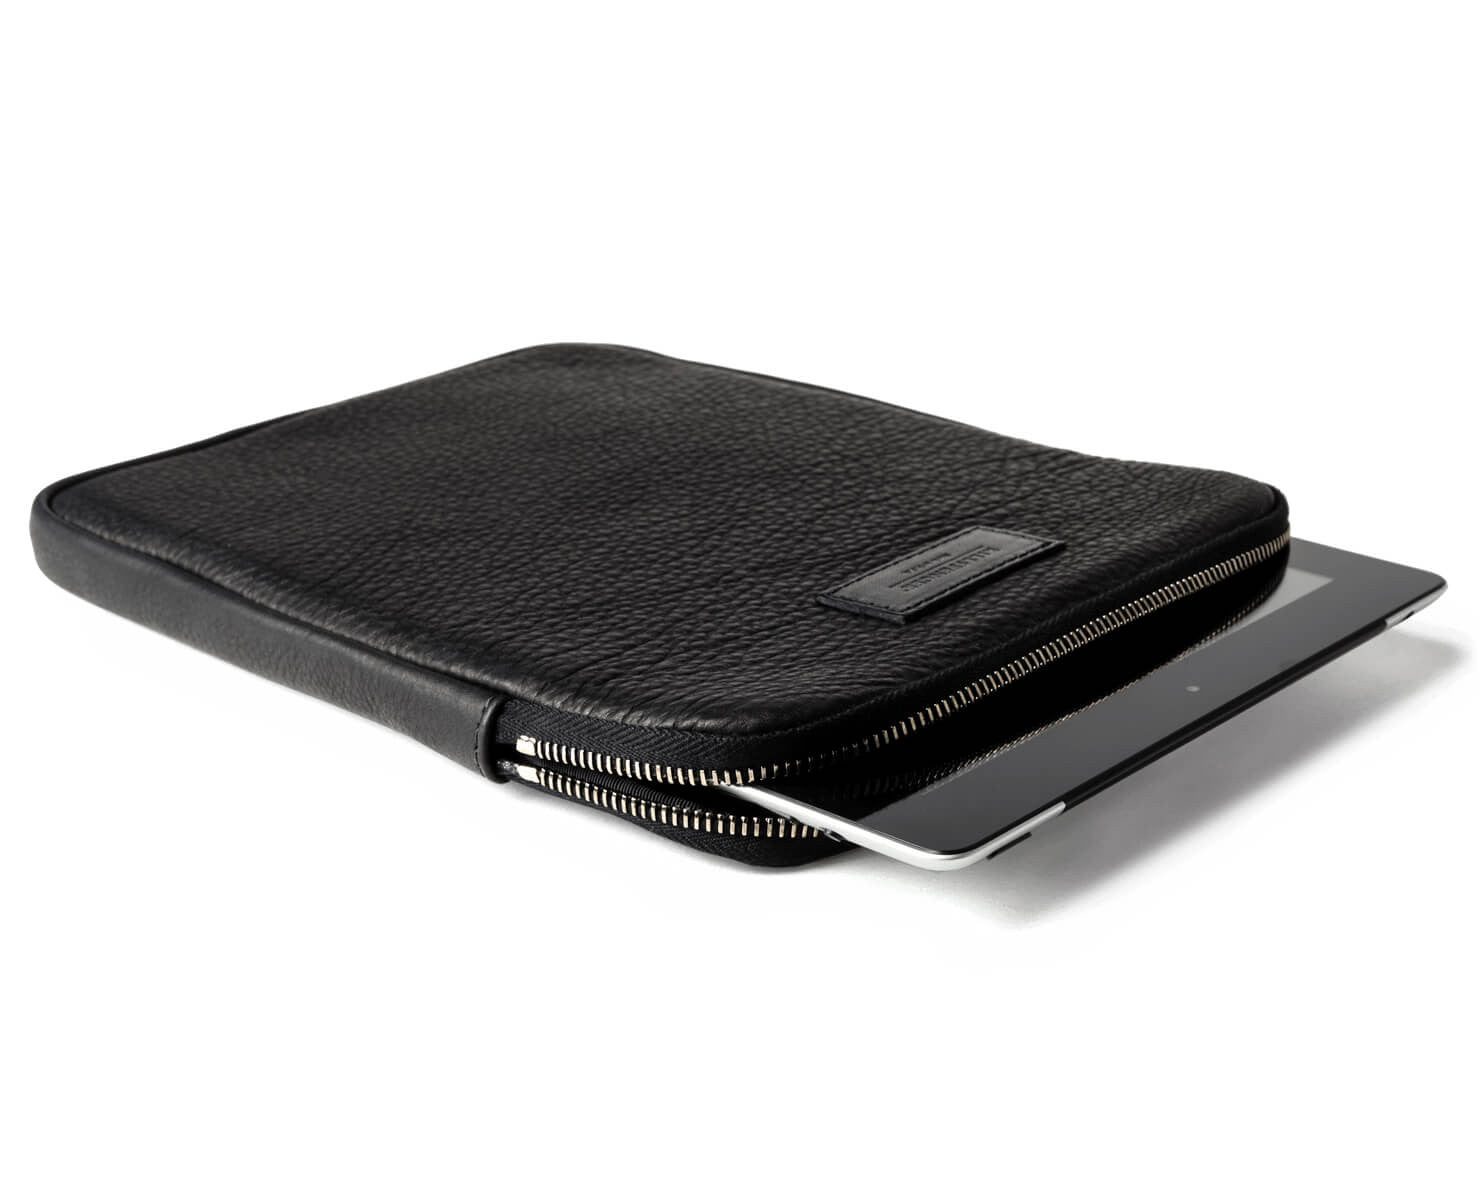 IPAD CASE 2.0 | KILLSPENCER® - Black Leather